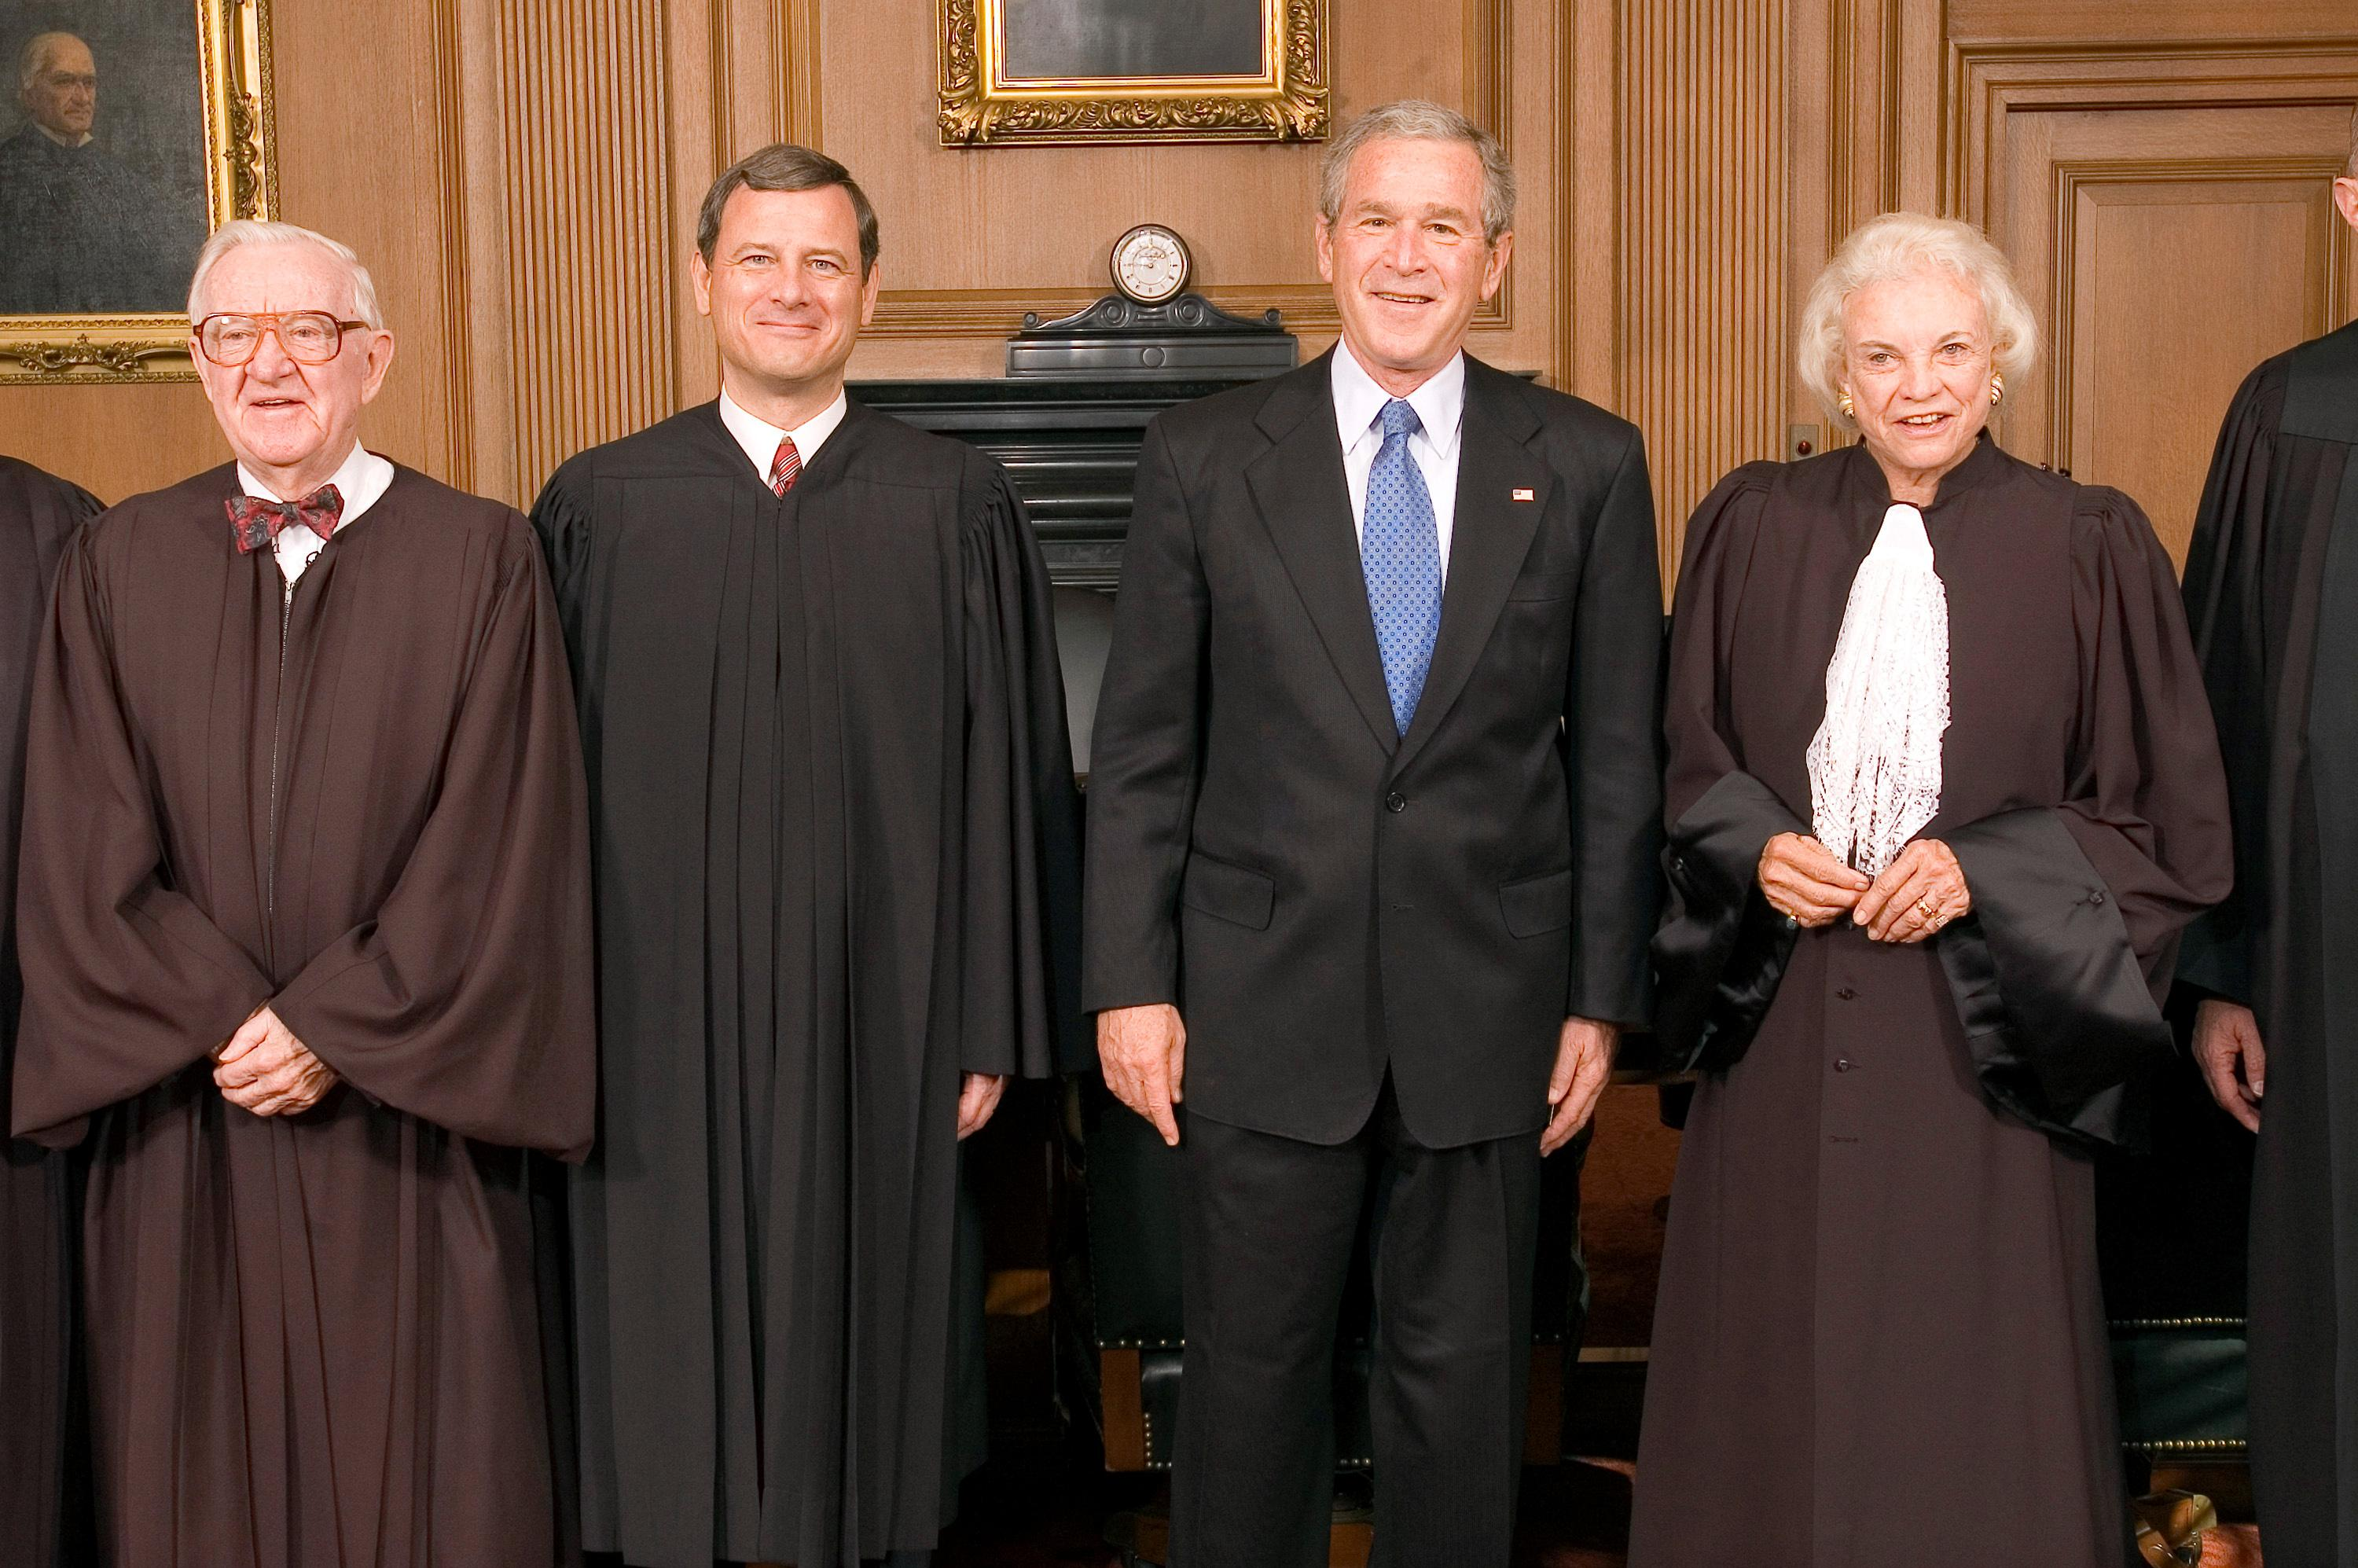 U.S. Chief Justice John Roberts (2nd L) poses for pictures with President George W. Bush (2nd R) and senior Justices John Paul Stevens (L) and Sandra Day O'Connor in the Chief Justice's Conference Room at the Supreme Court in Washington, D.C. October 3, 2005. Ken Heinen/Pool